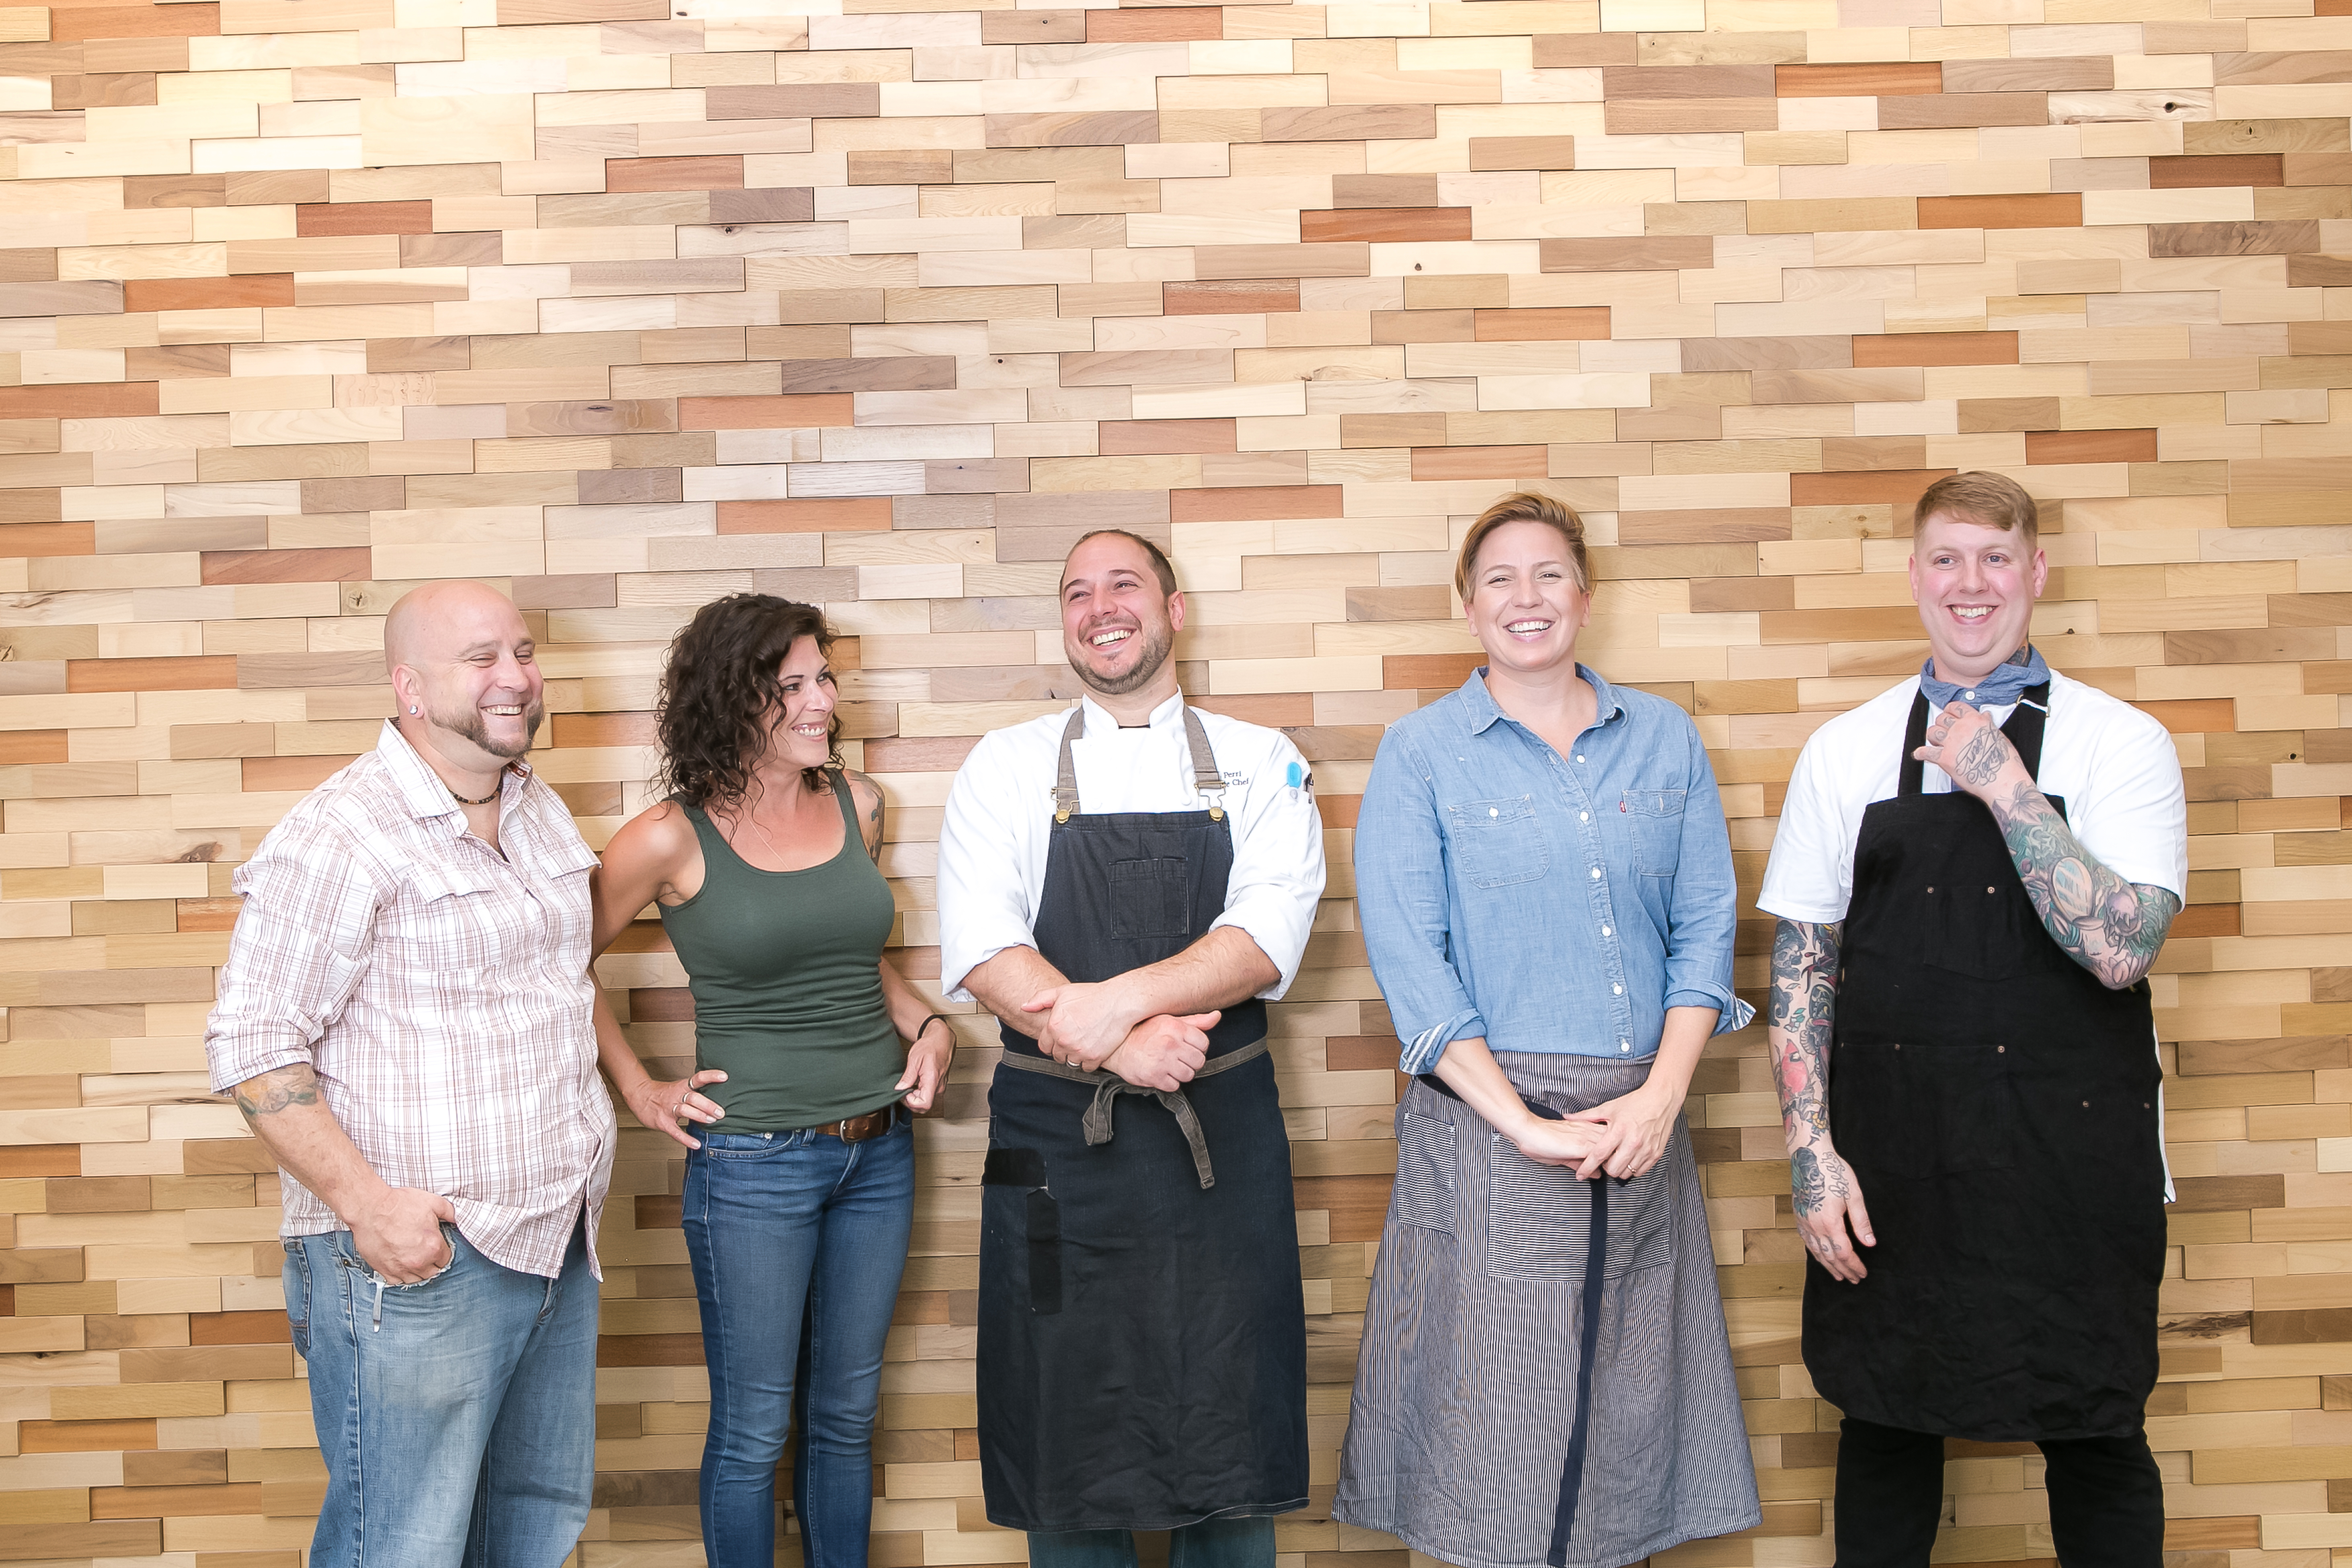 FederalGalley_Chefs_PhotoCred-LauraPetrilla.jpg The new round of chefs at the soon-to-open Federal Galley include Stephen Eldridge and Susan Cope of Provision PGH and El Lugar; Vincent Perri of Supper, and Kristin Calverley and Nate Peck of Michigan & Trumbull.